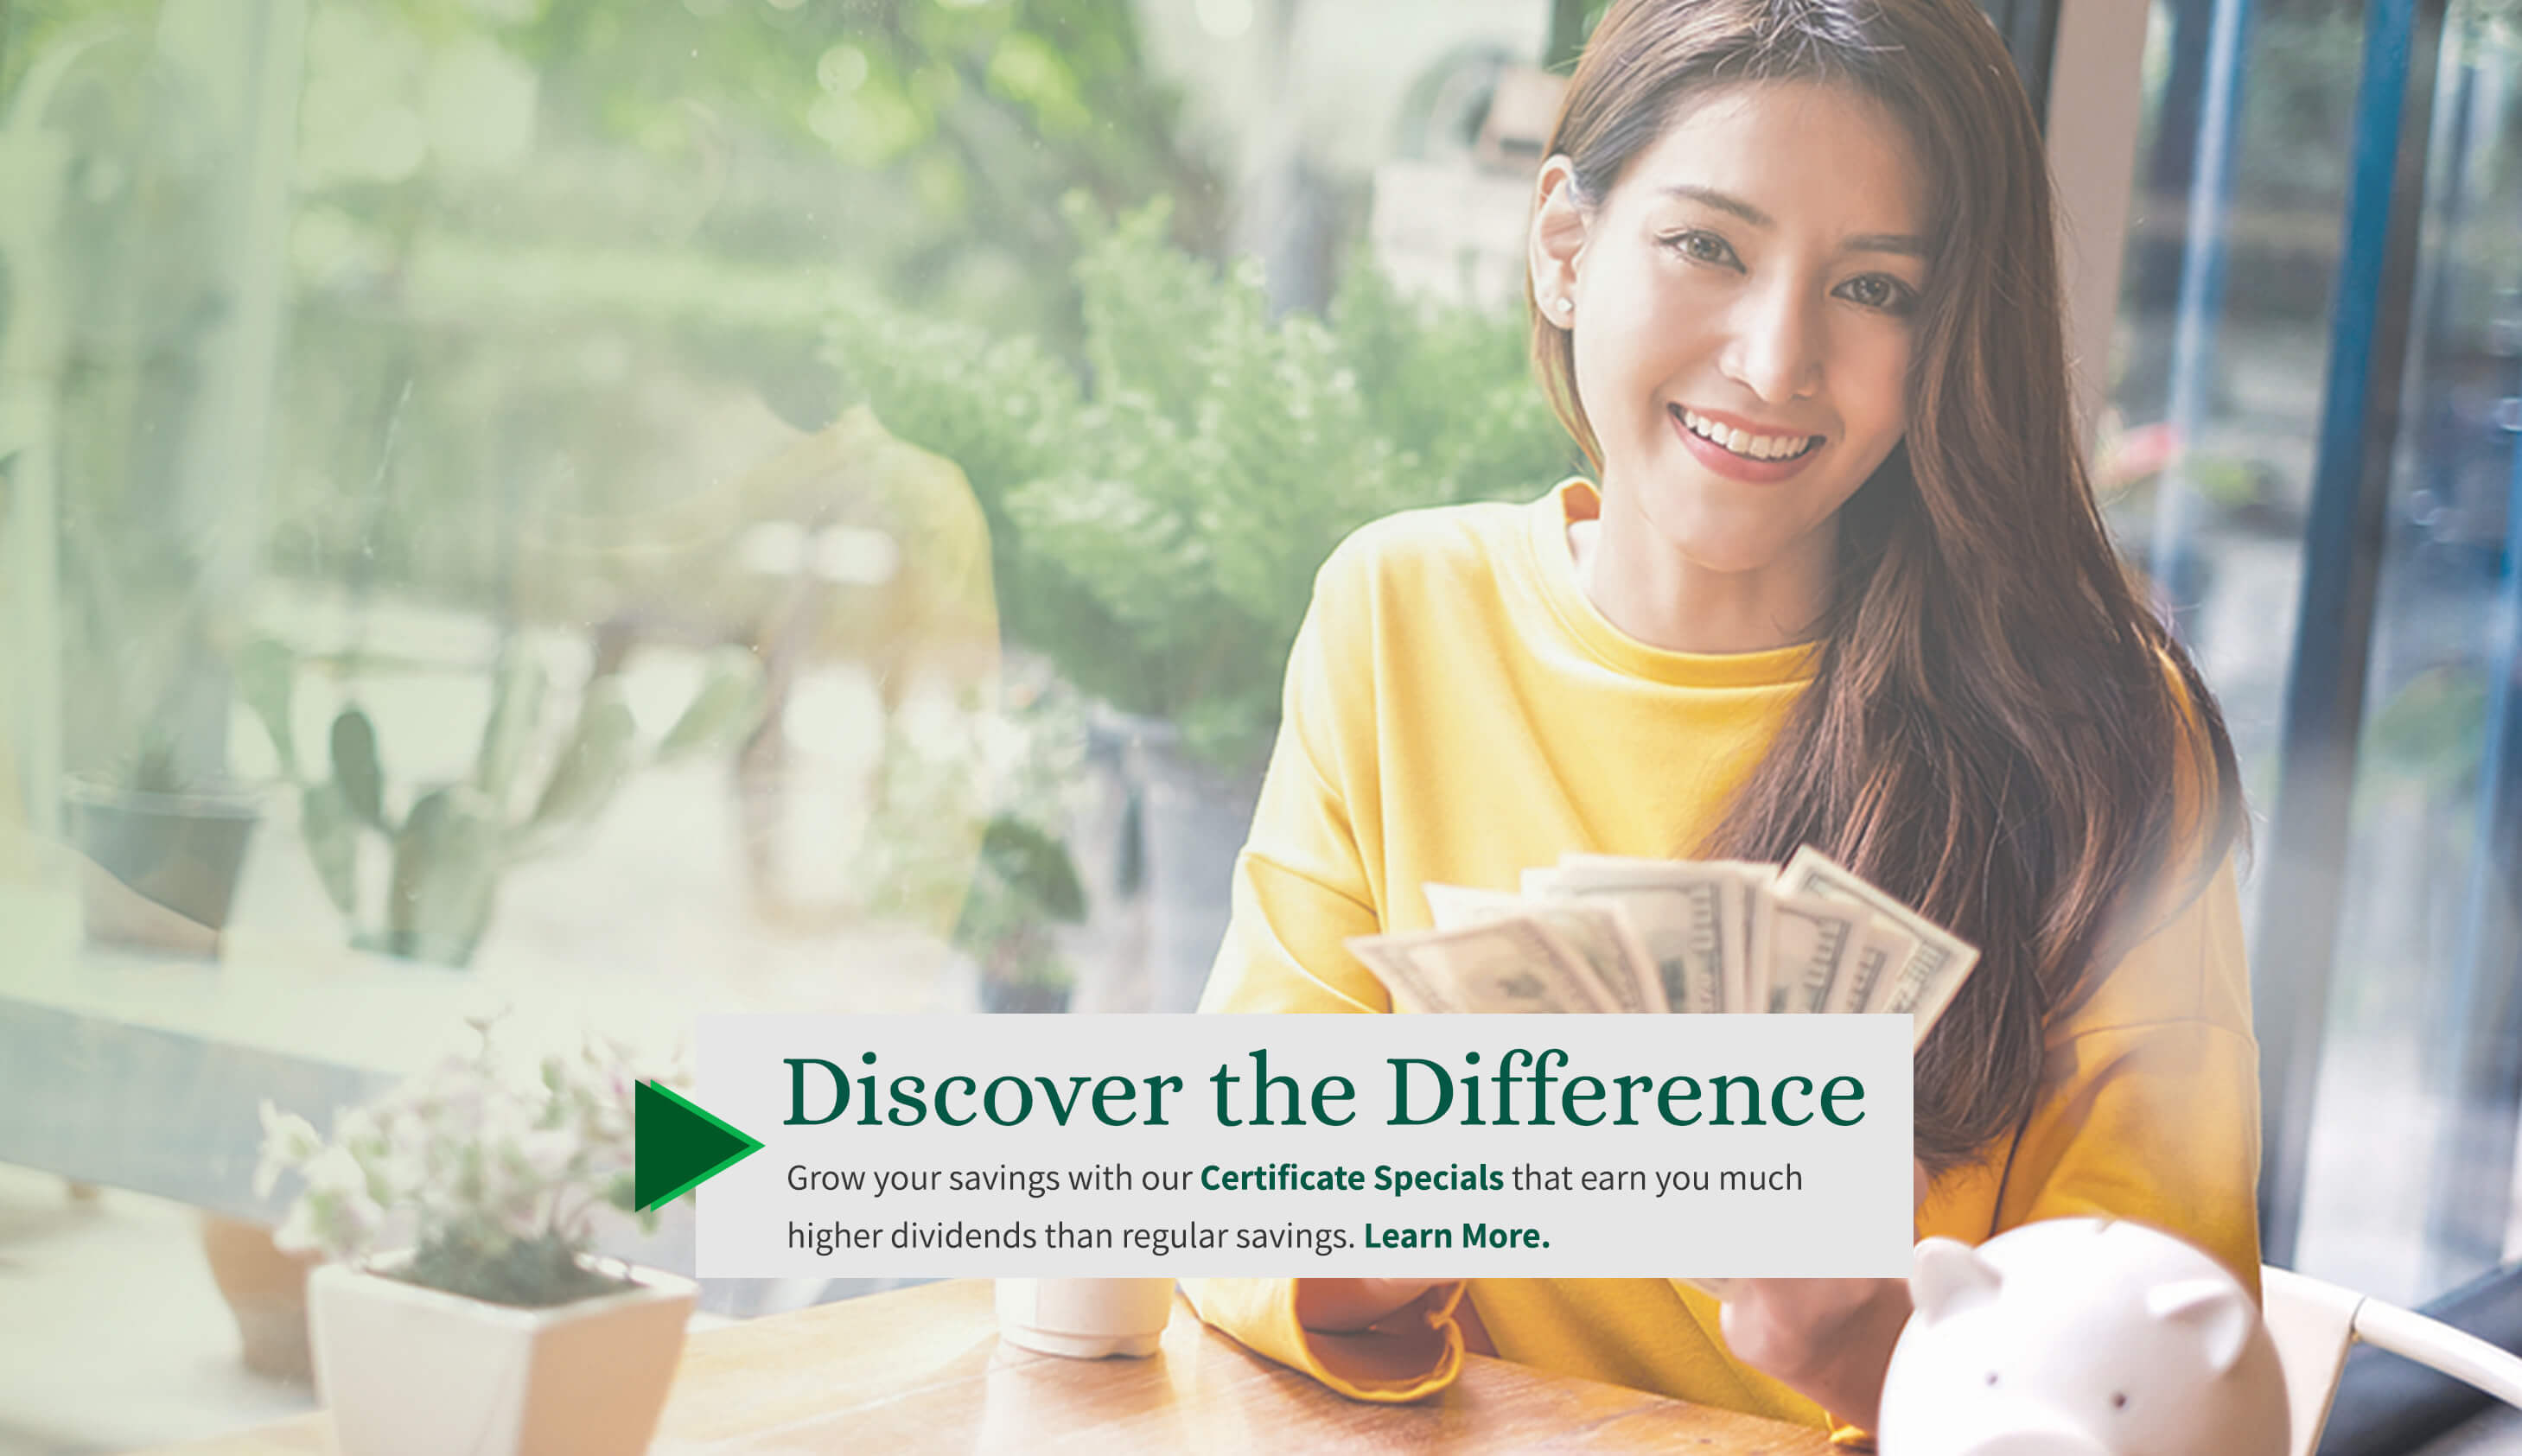 Discover the Difference. Grow your savings with our Certificate Specials that earn you much higher dividends than regular savings. Learn more.